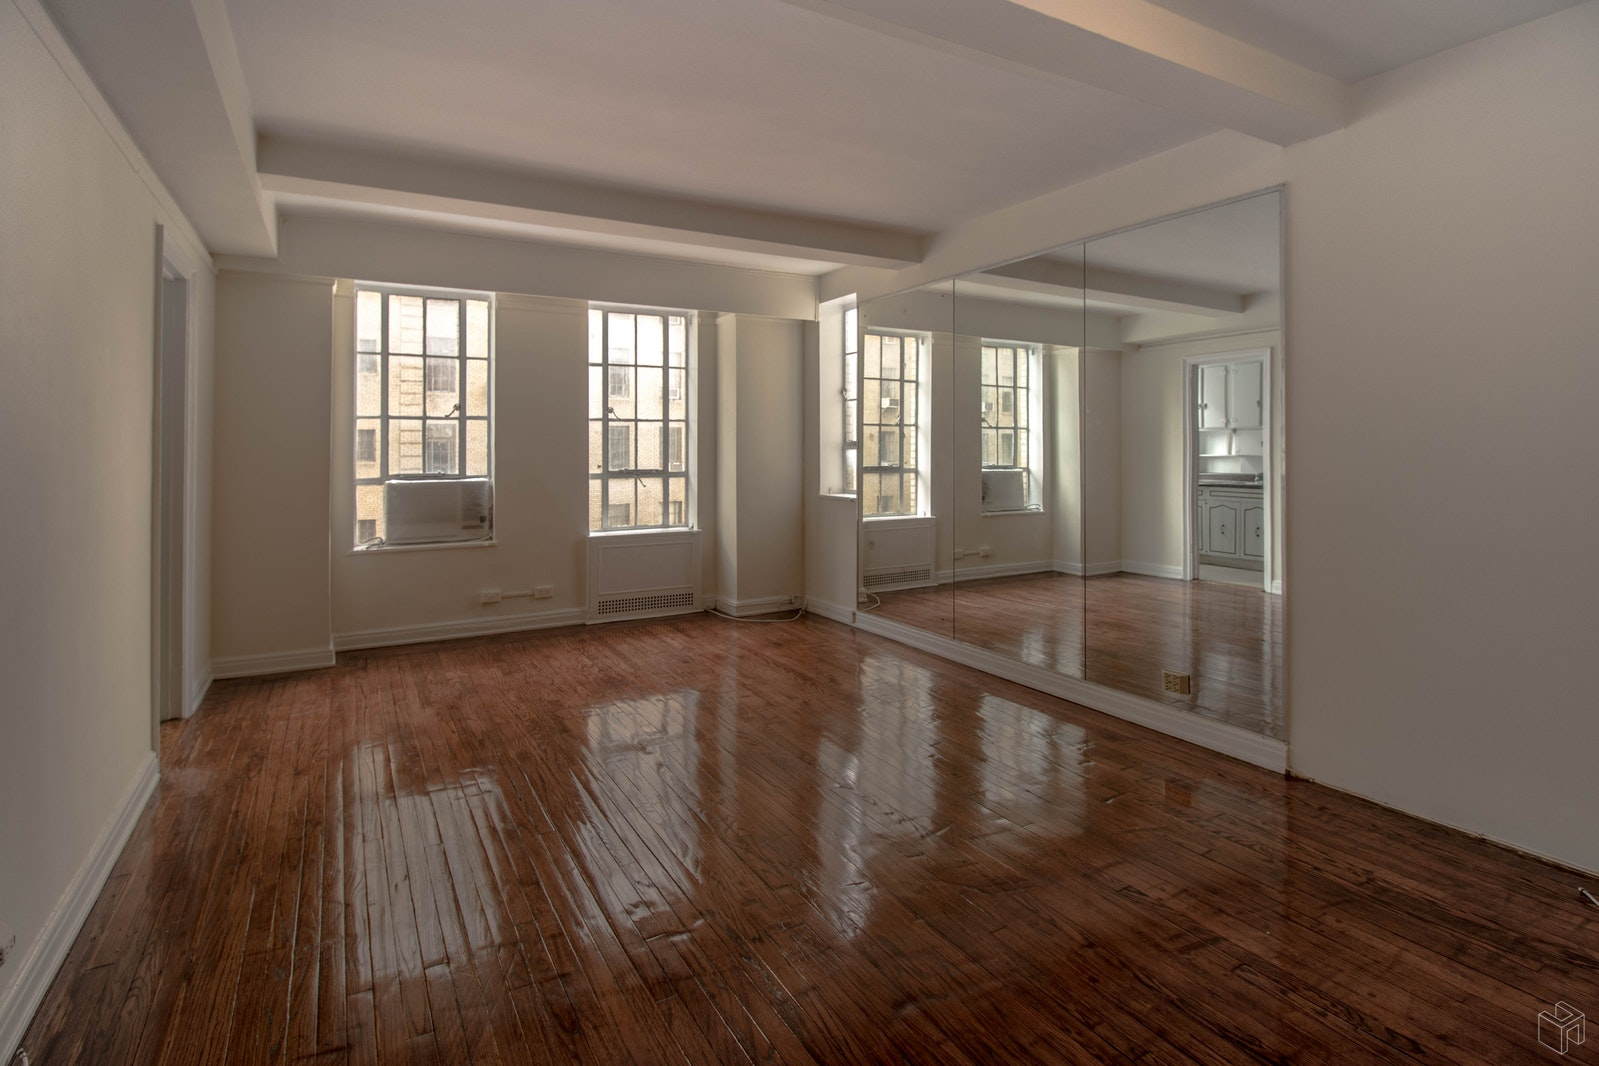 350 West 57th Street 5c, Midtown West, NYC, 10019, Price Not Disclosed, Rented Property, Halstead Real Estate, Photo 3